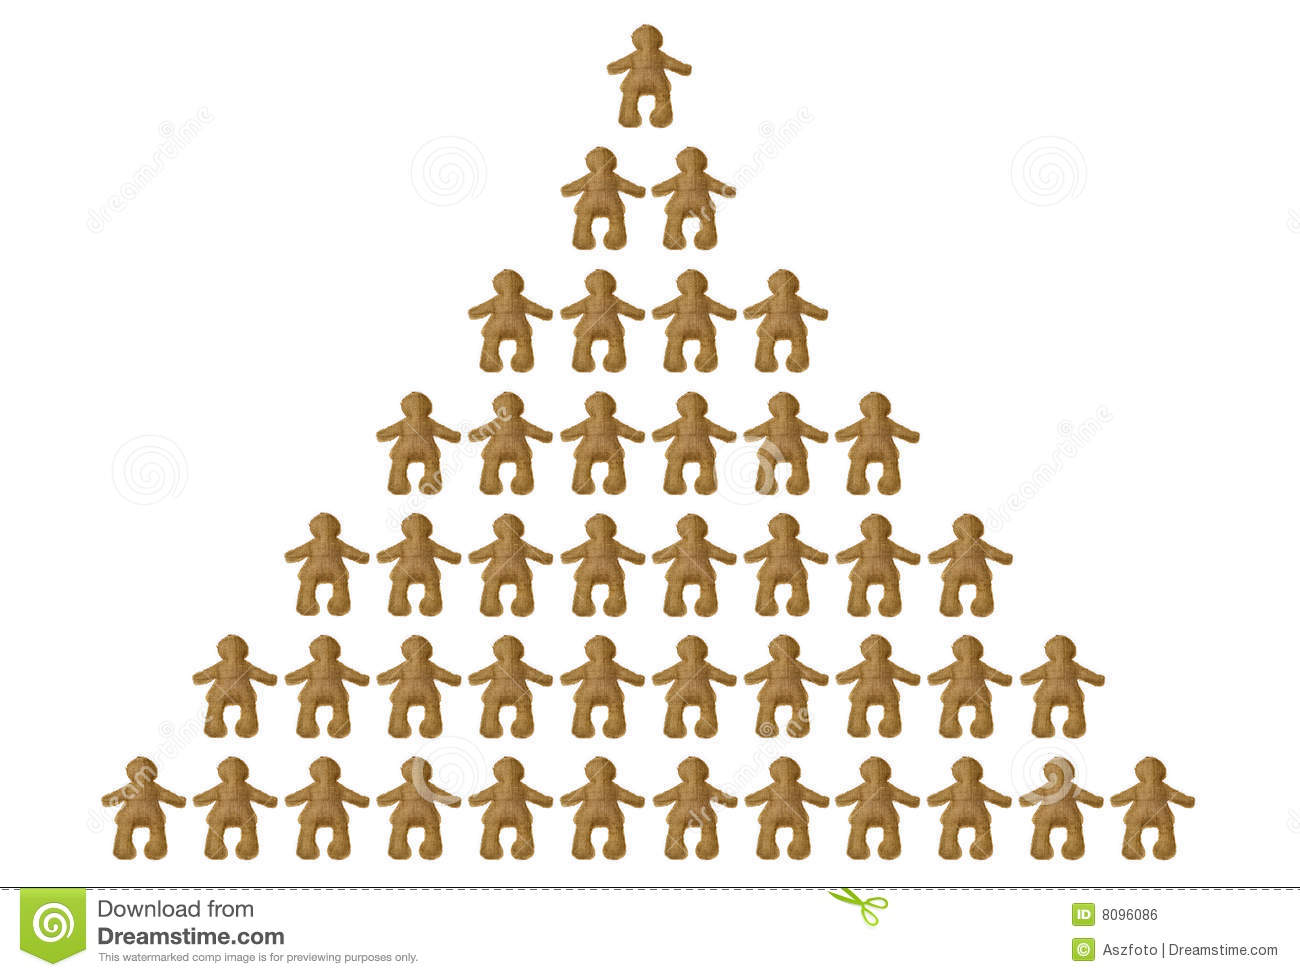 Pyramid Of Social Classes Royalty Free Stock Image - Image: 8096086